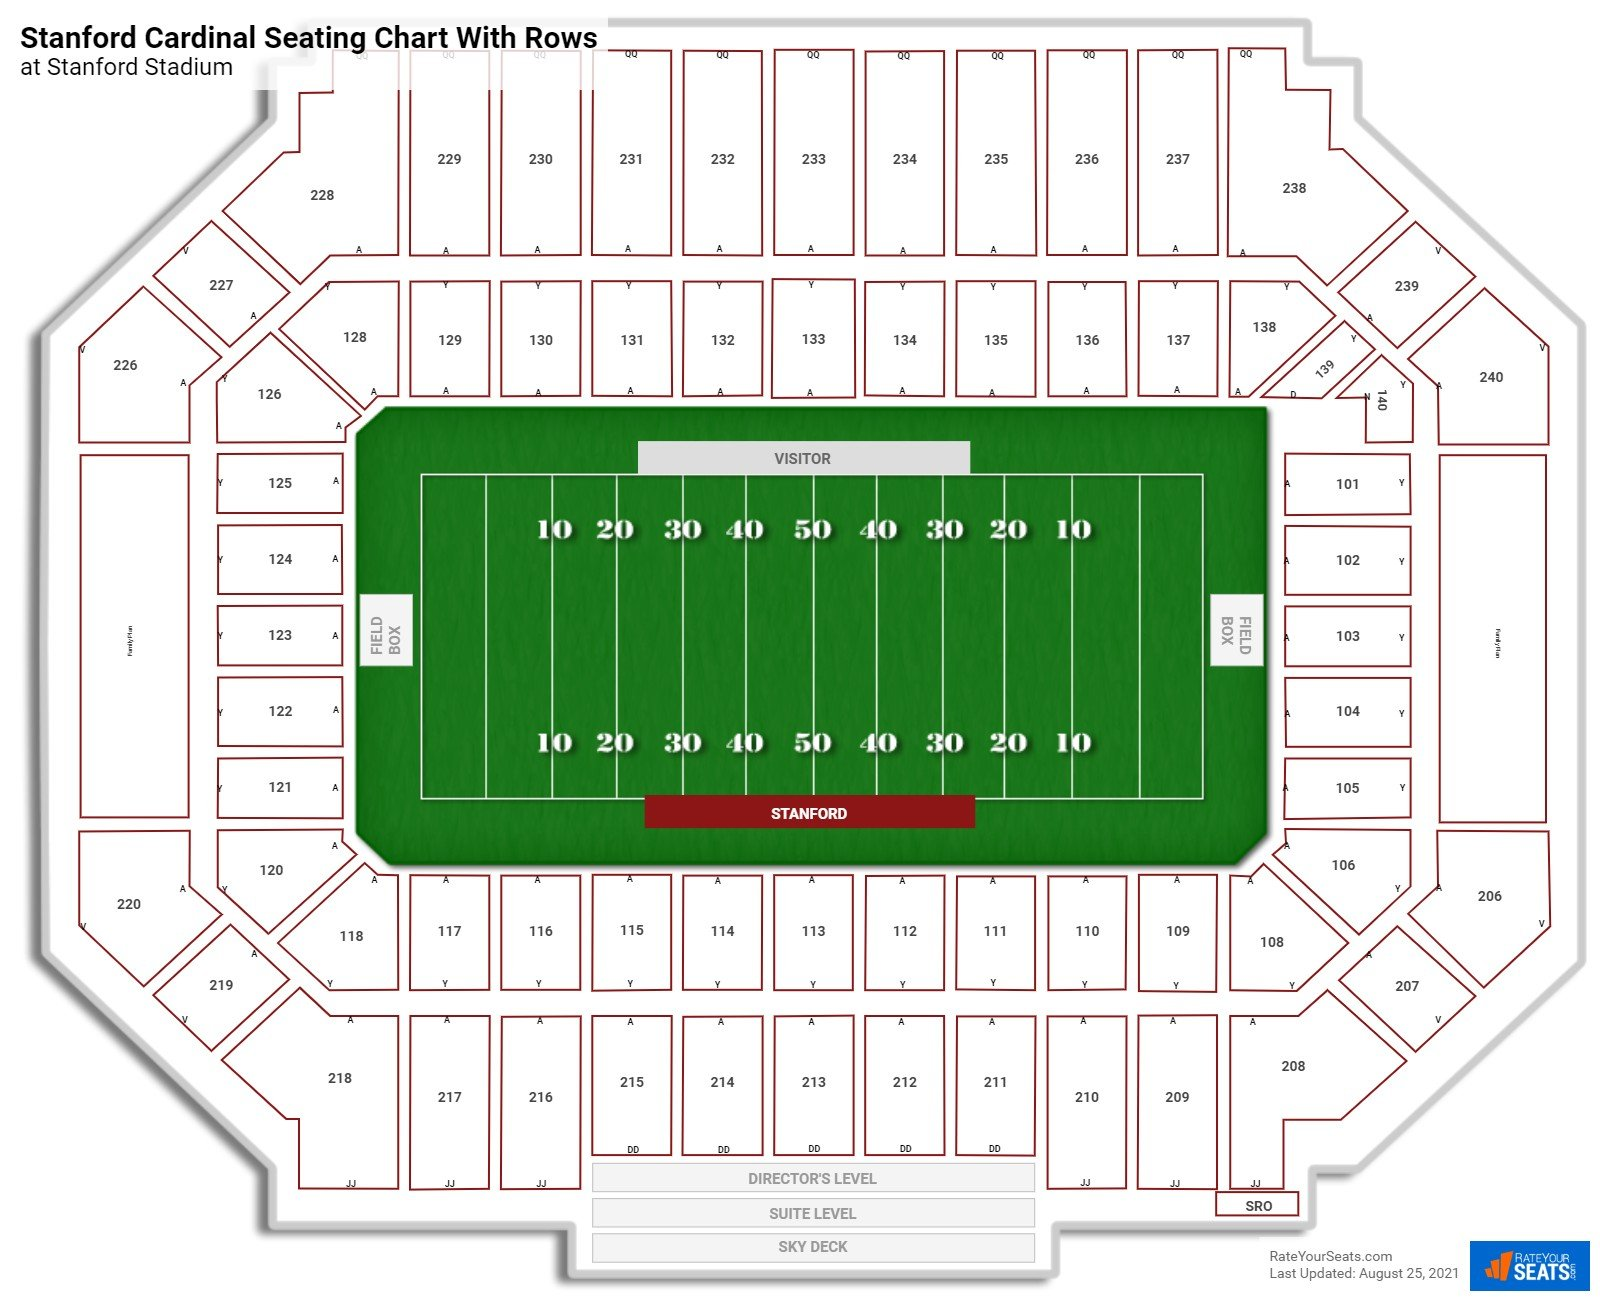 Stanford Stadium seating chart with rows